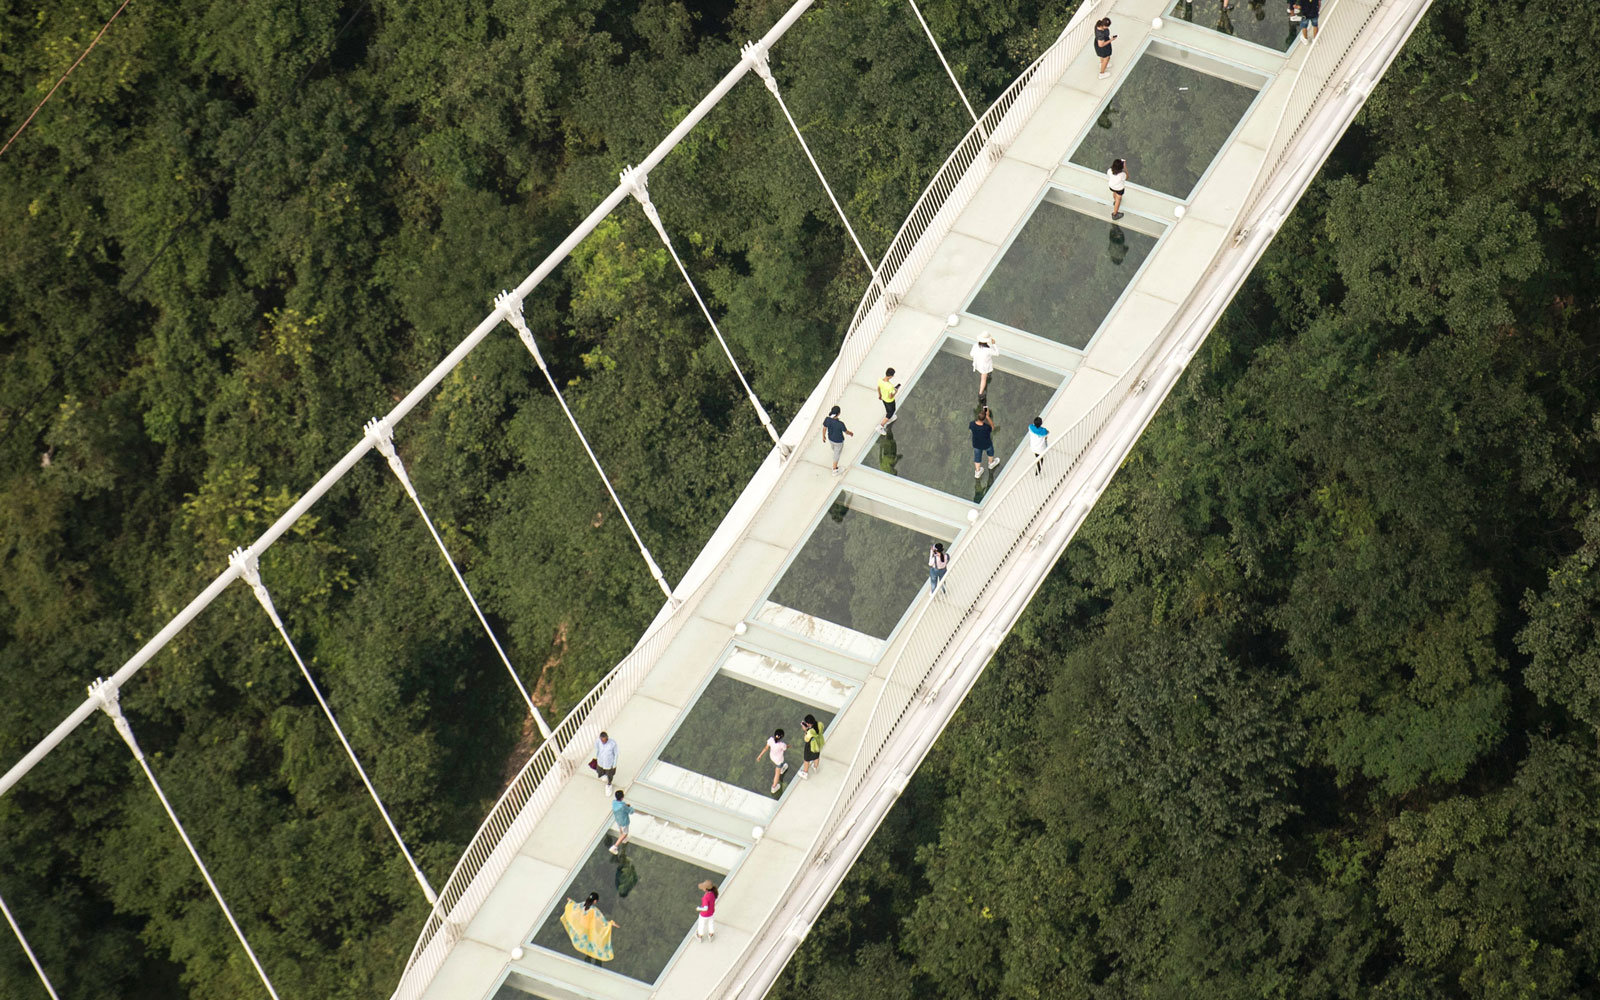 Above the glass bridge in China.